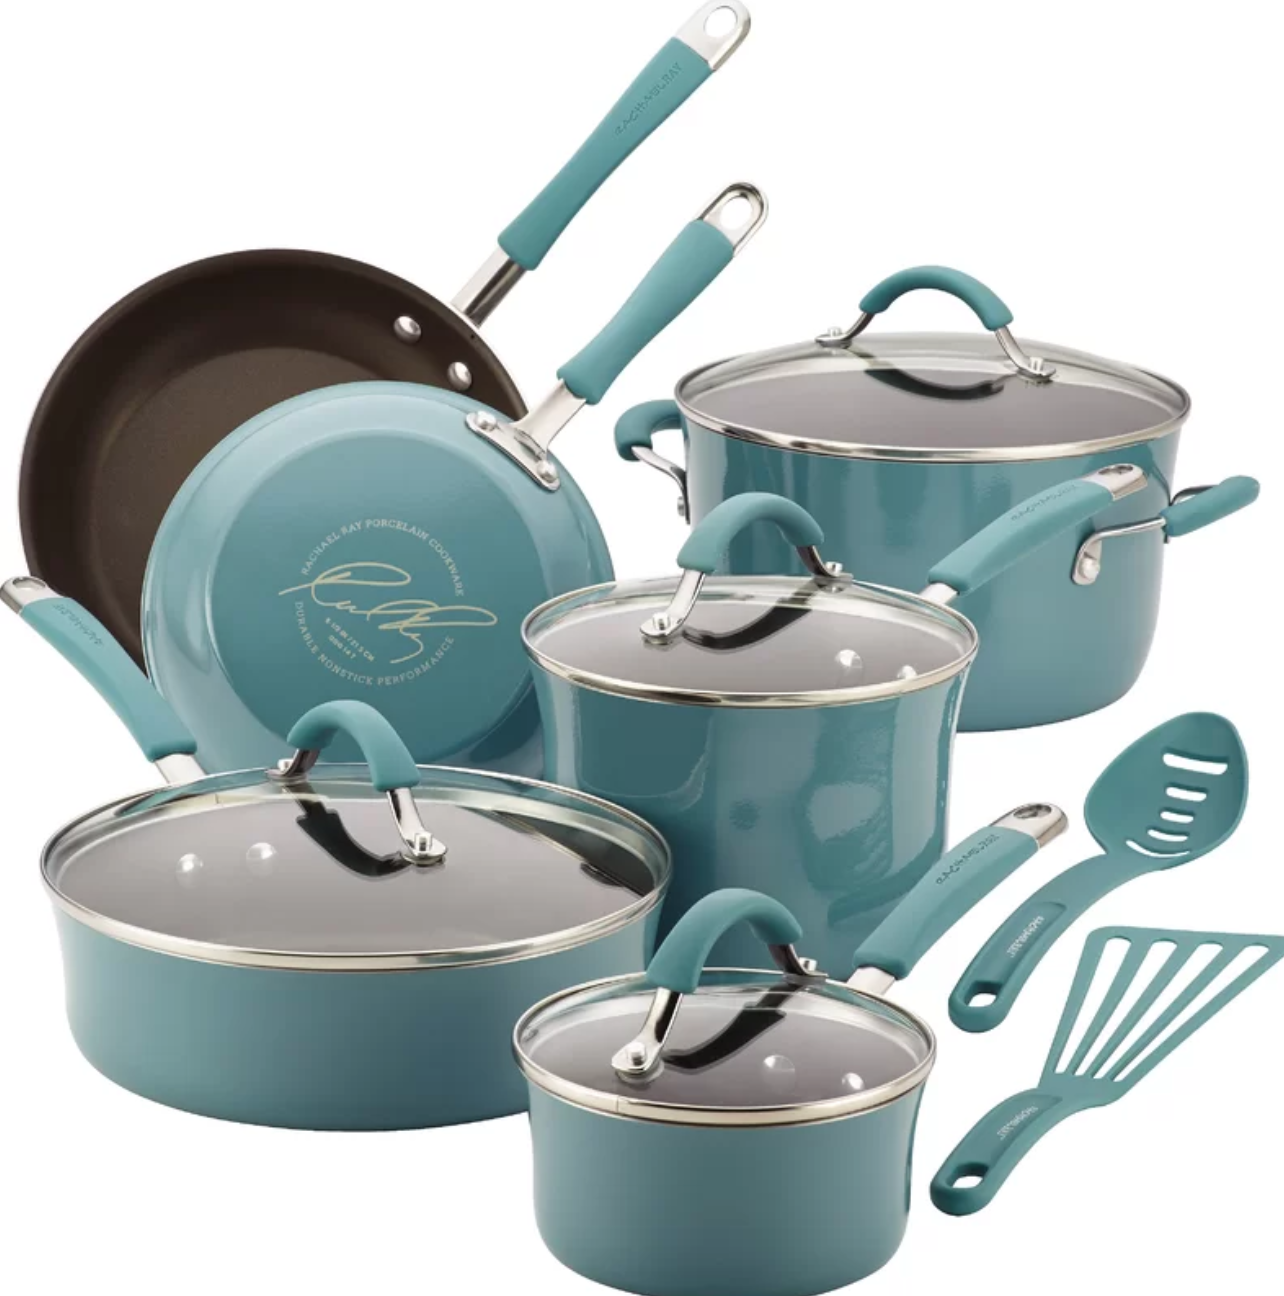 Wayfair cookware set